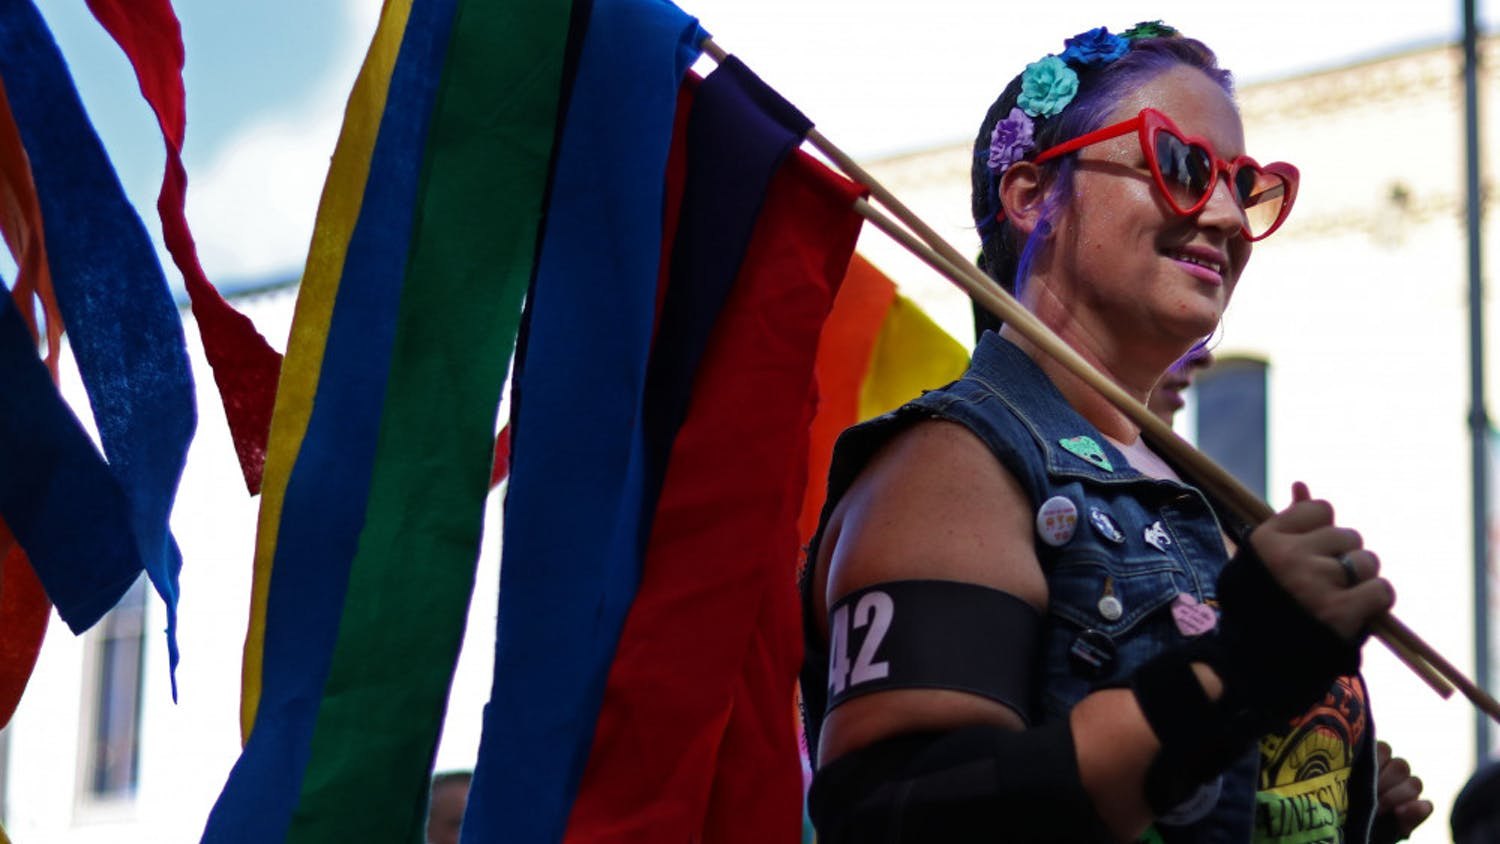 Jackie Korpela, known as Haley's Vomit, a member of the Ocala Cannibals Roller Derby team, skates Saturday in the Gainesville Pride Parade that marched down University Avenue and ended at Bo Diddley Plaza.Correction: This caption has been updated to reflect the name of Korpela.